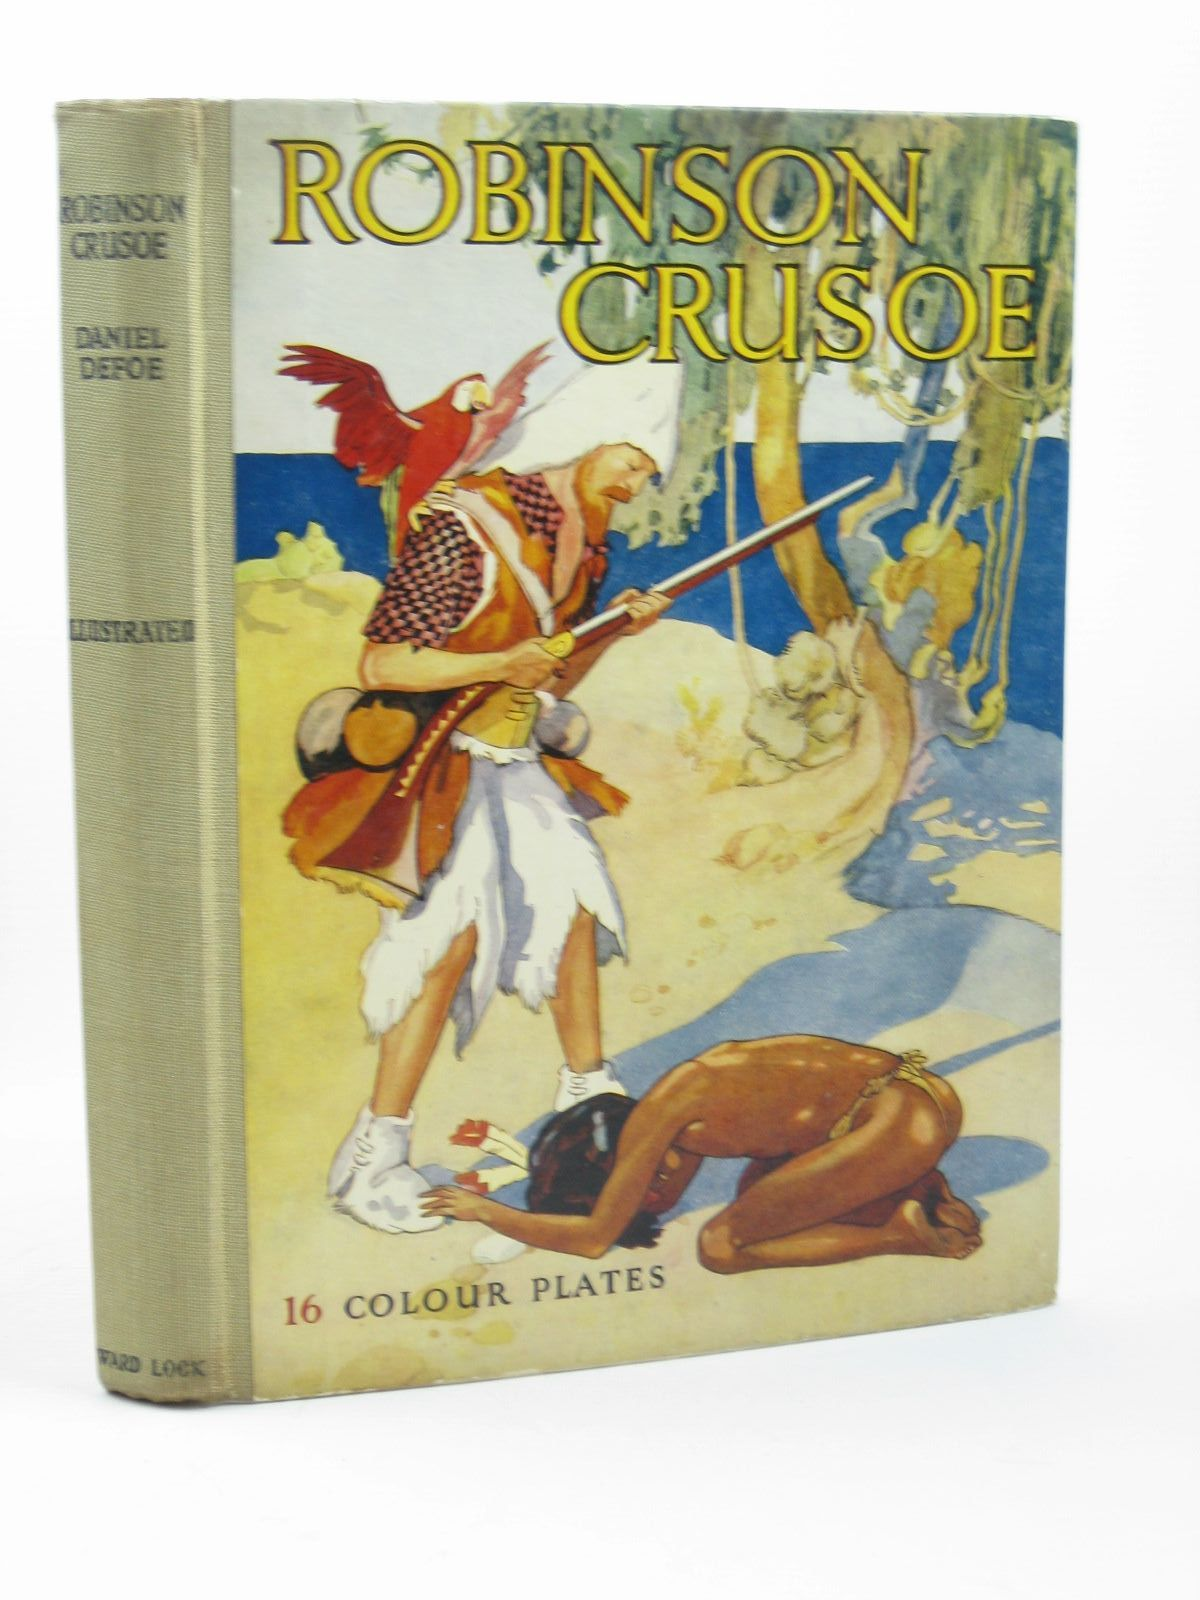 Photo of THE ADVENTURES OF ROBINSON CRUSOE written by Defoe, Daniel illustrated by Jackson, A.E. published by Ward, Lock & Co. Ltd. (STOCK CODE: 1312019)  for sale by Stella & Rose's Books